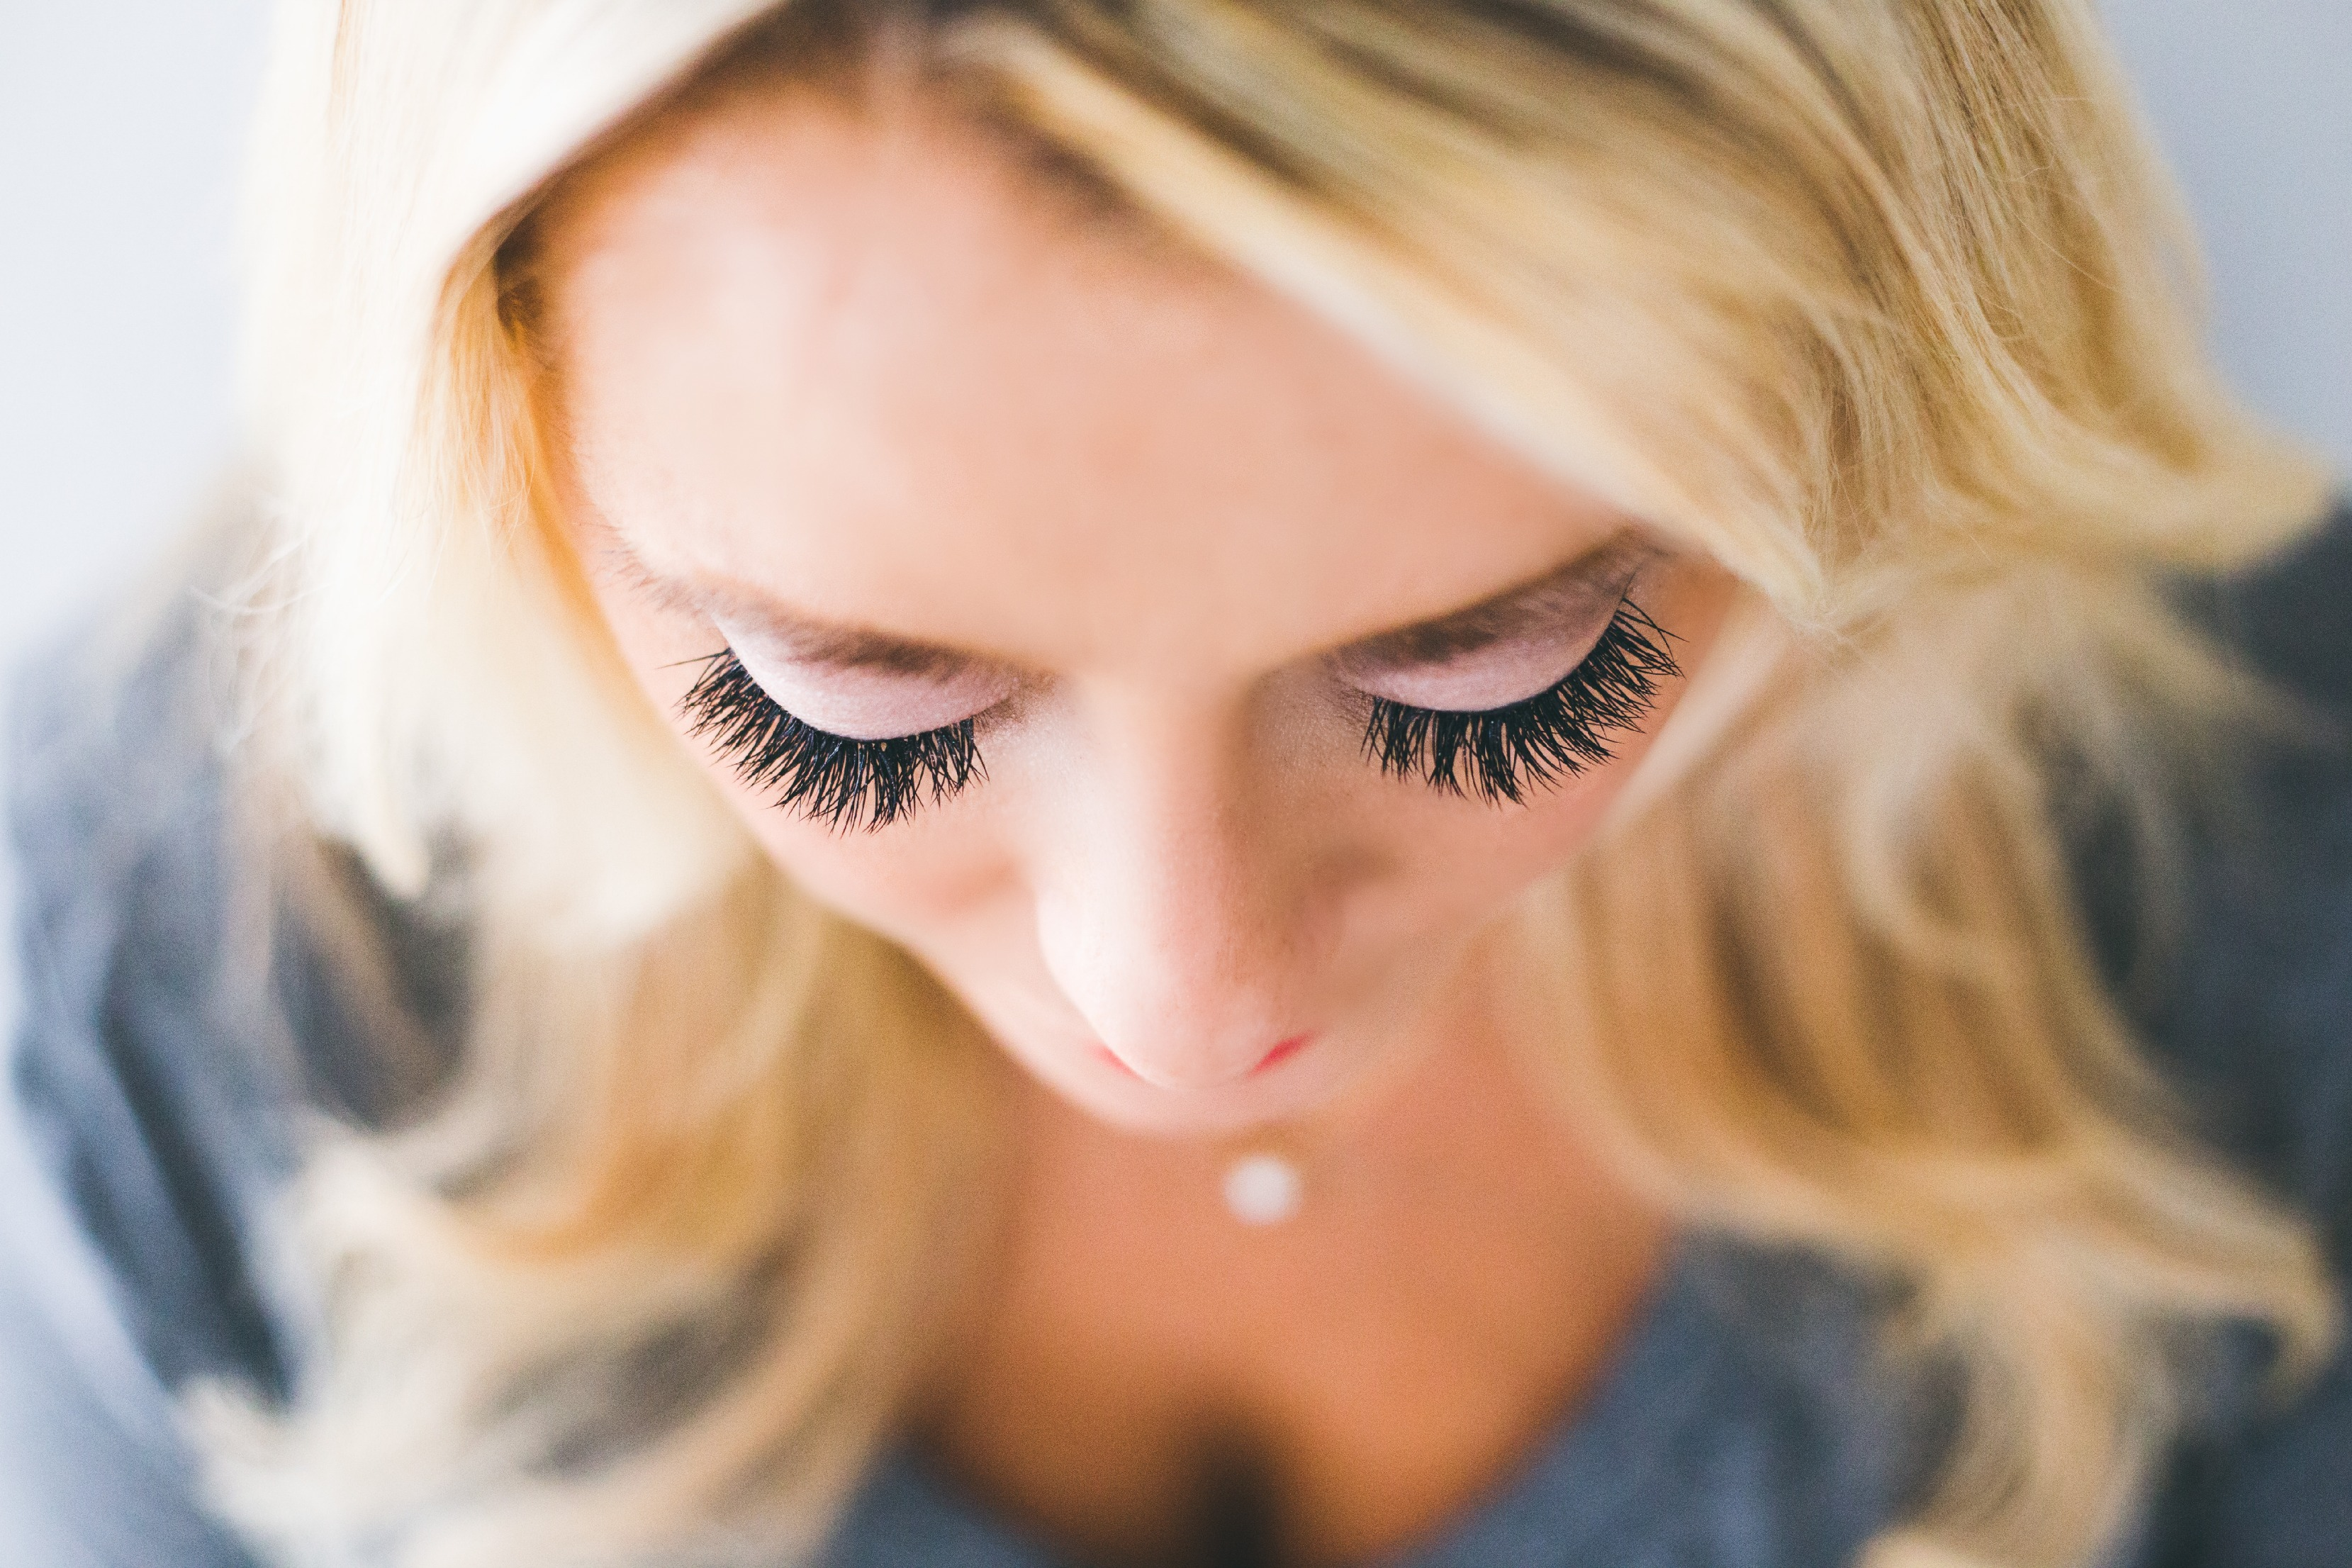 How To Dye Your Eyelashes With Henna